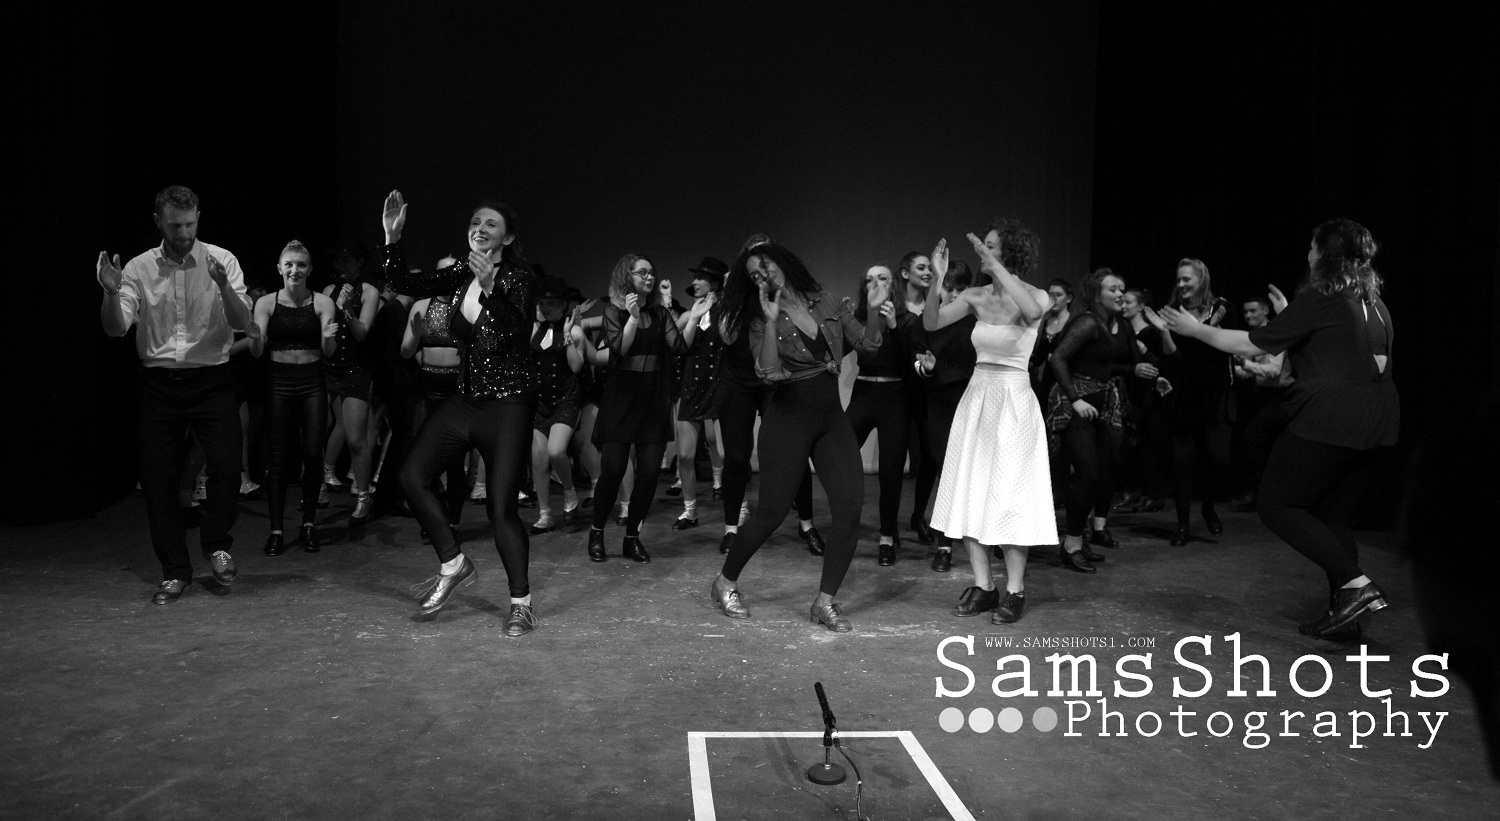 tap dance festival uk 2017 showcase by sams shots